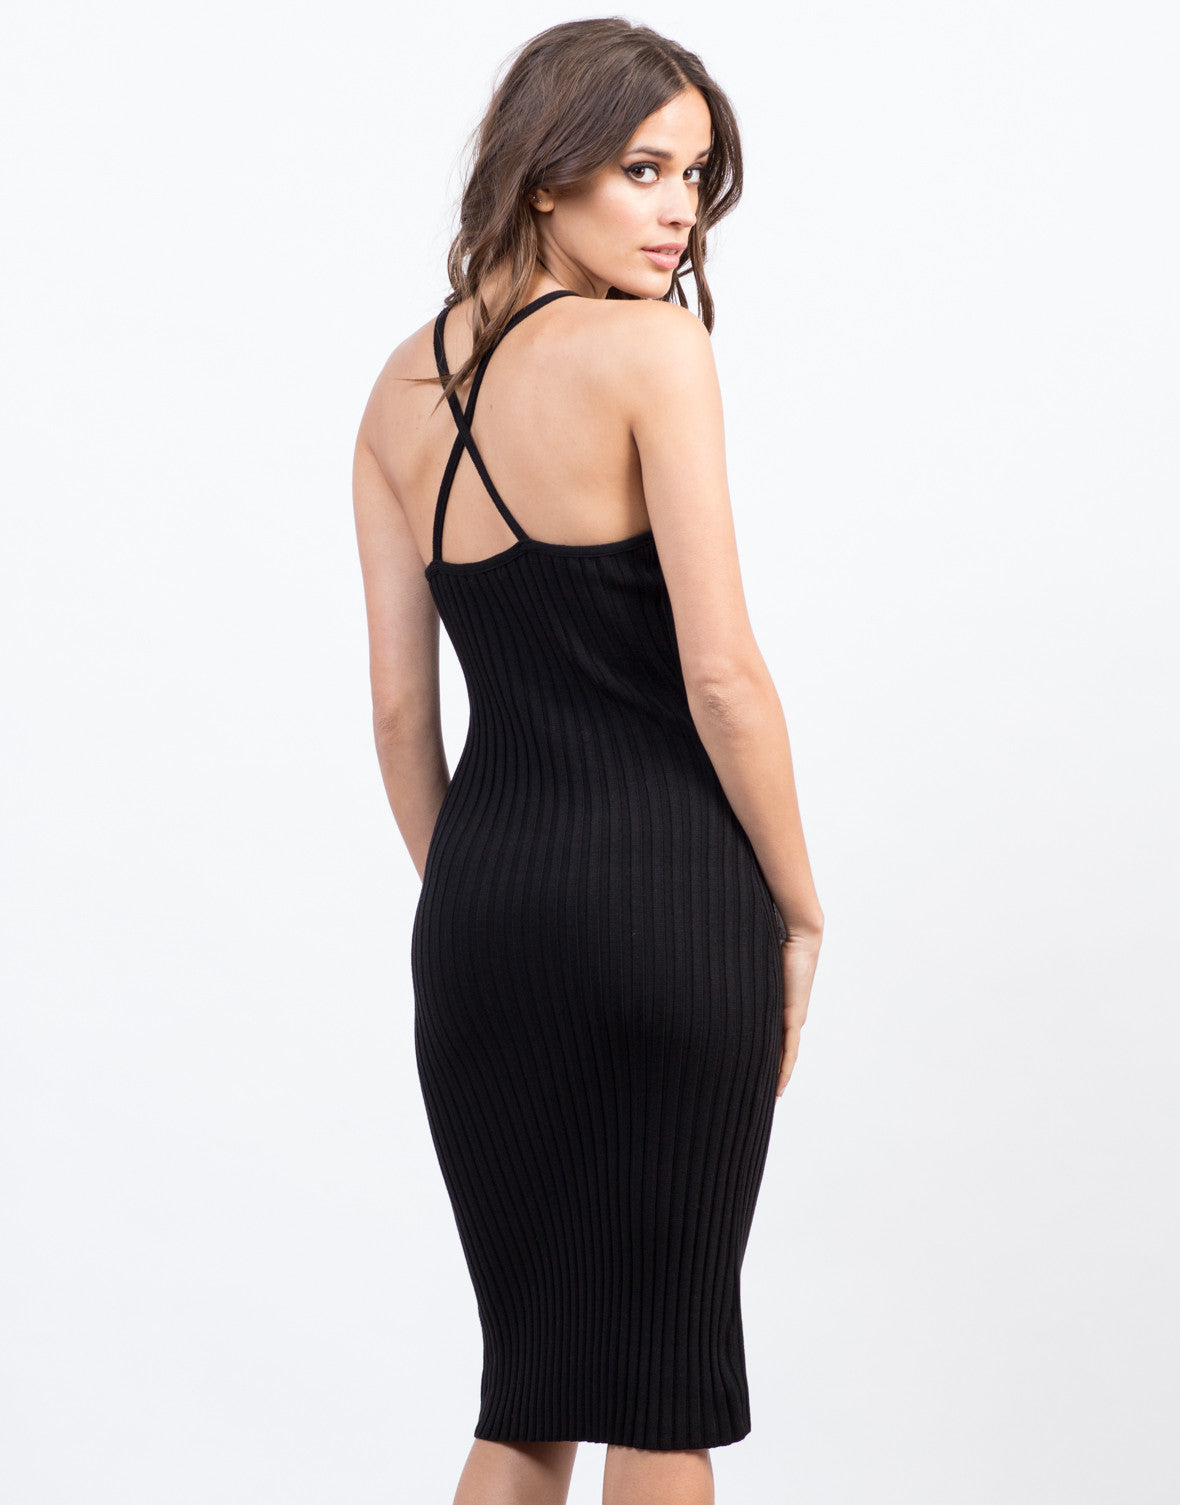 Back View of Cross Back Bodycon Dress